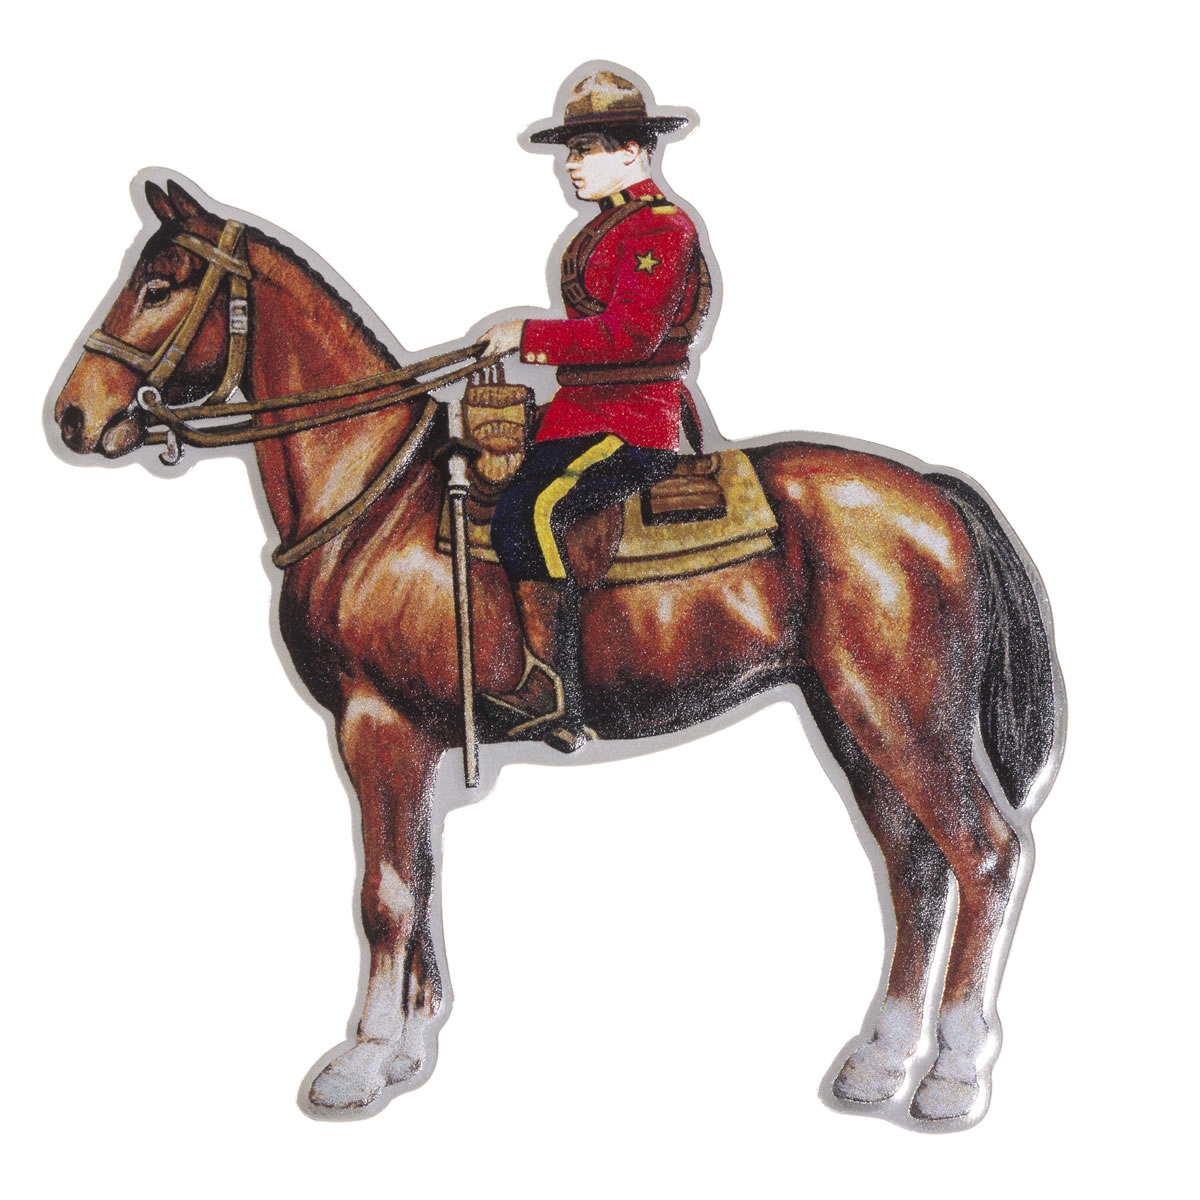 RCMP Royal Canadian Mounted Police .9999 silver 2013 Proof $10 O Canada